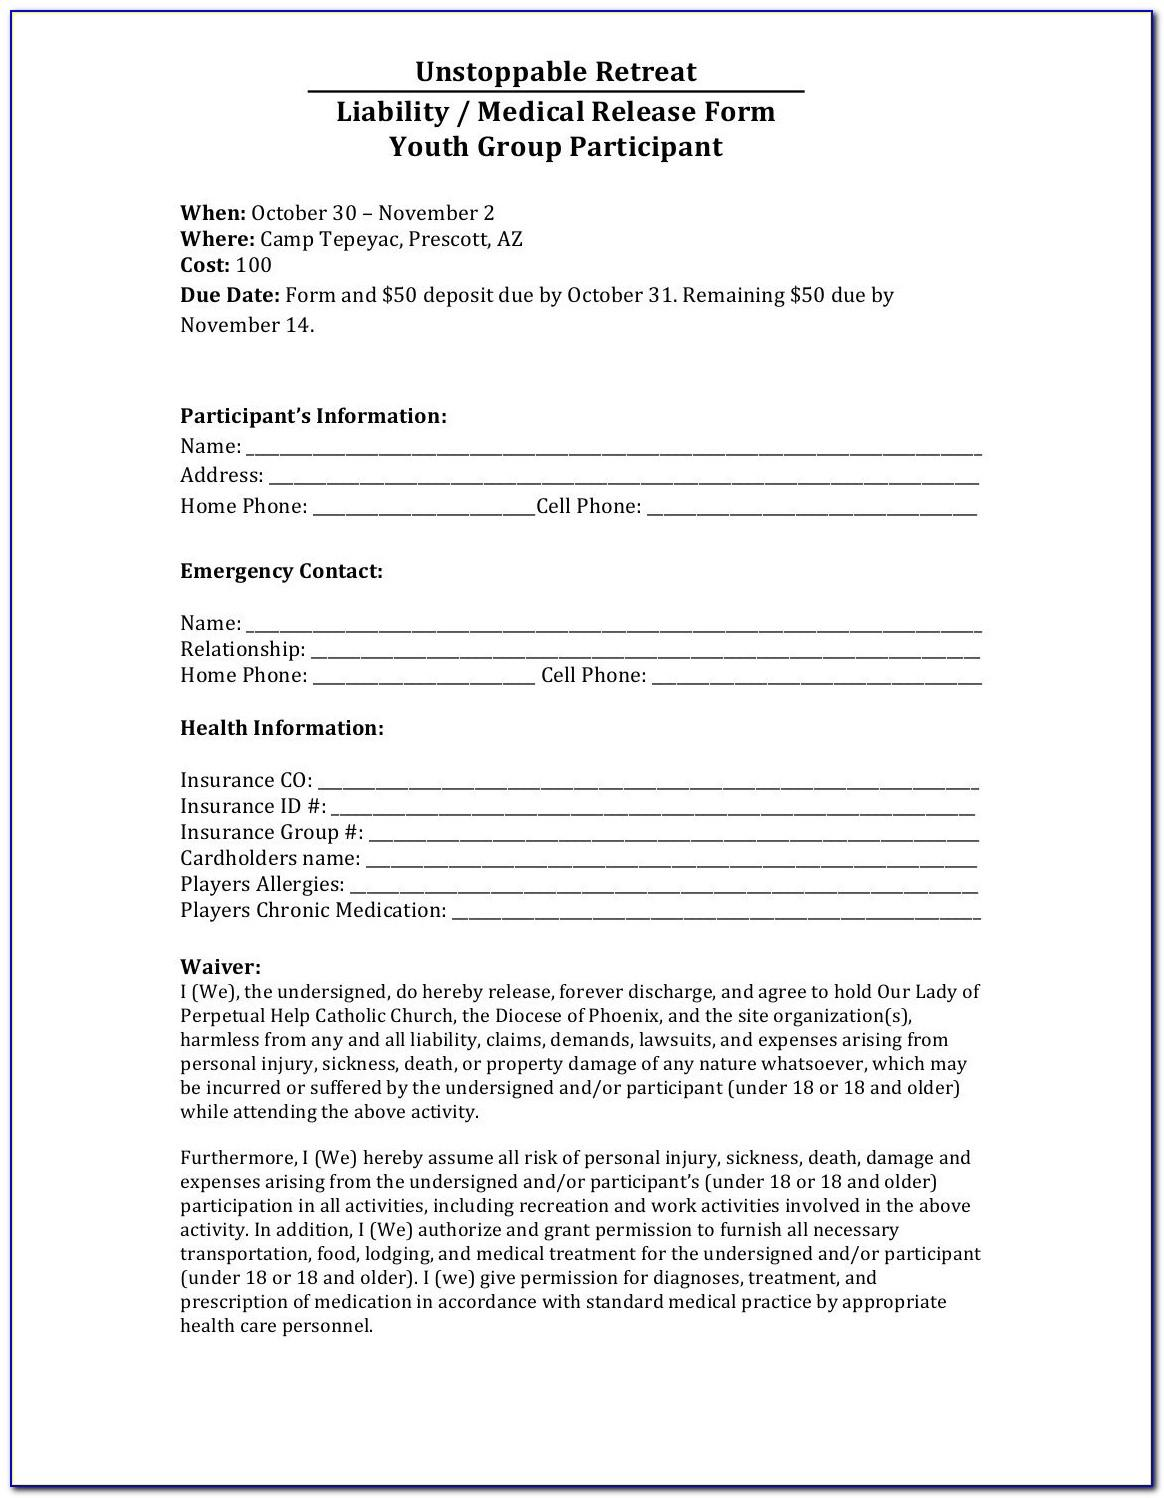 Generic Sports Liability Waiver Form